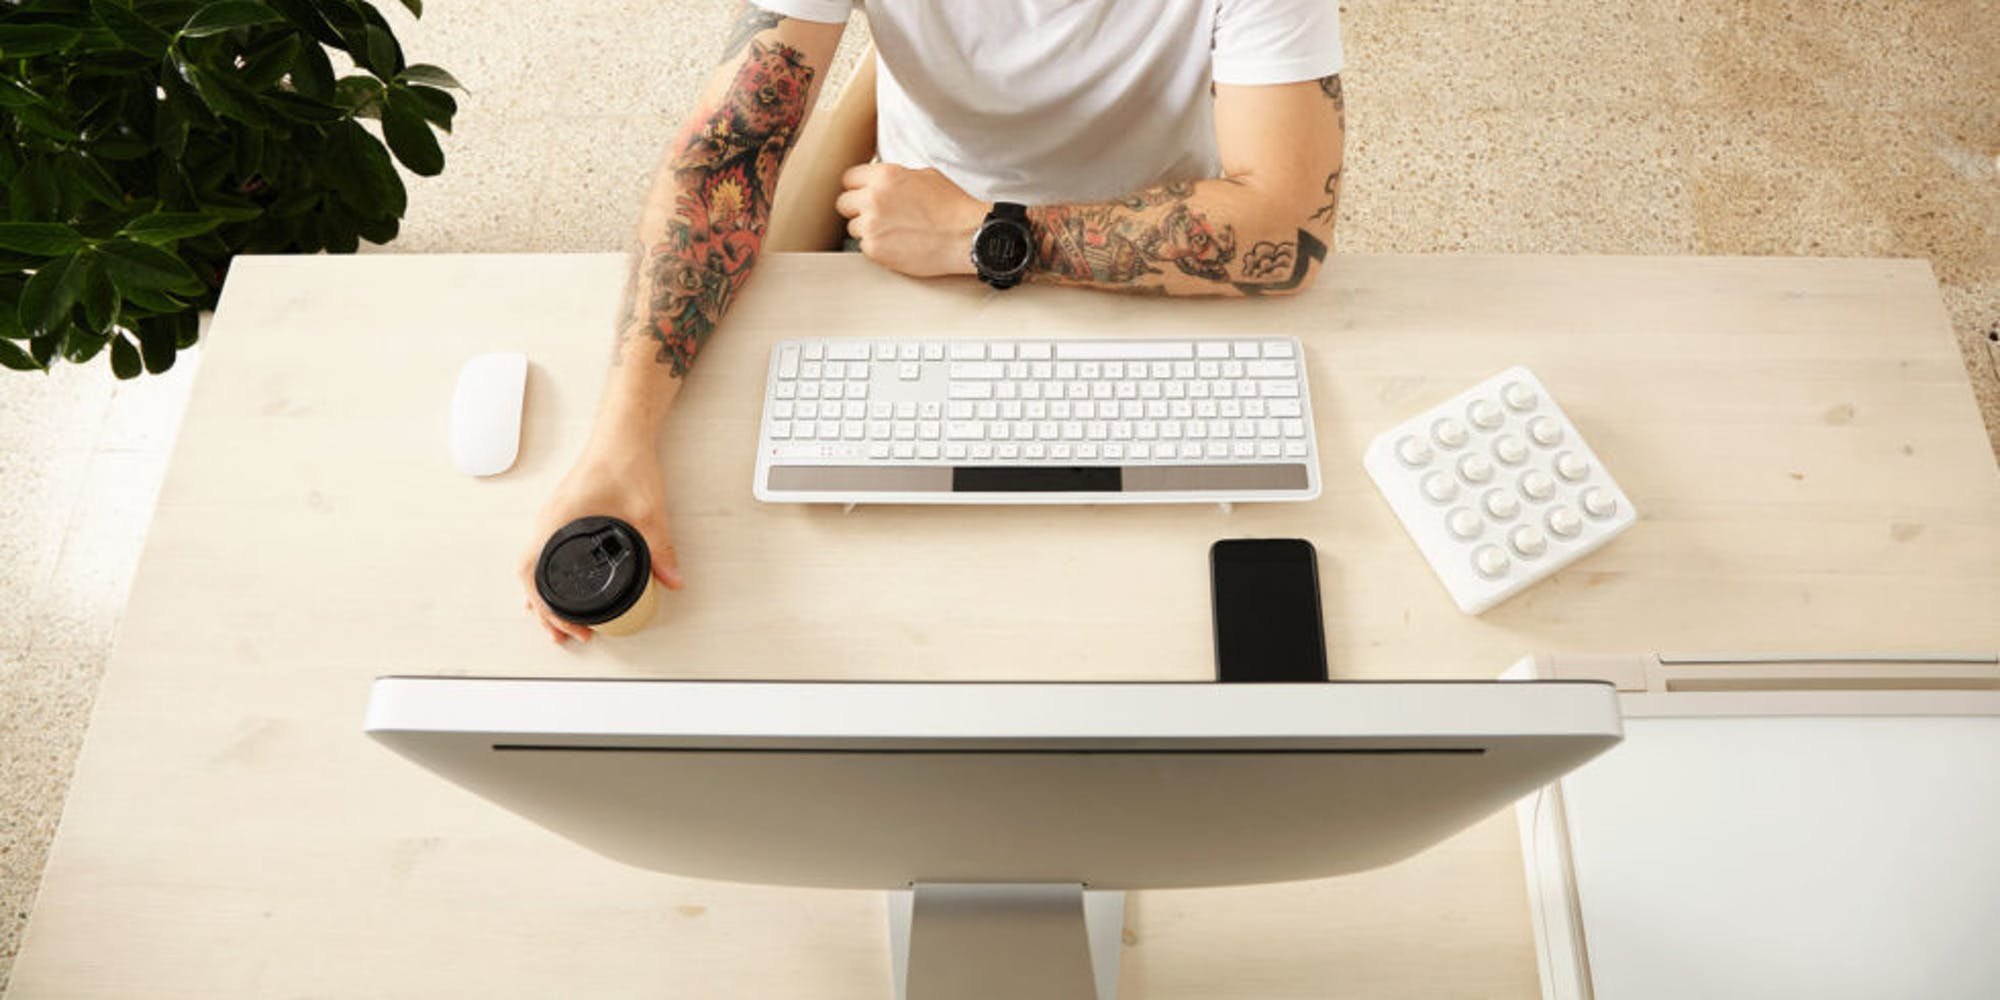 Top down view of a person using an imac and apple keyboard while holding on a cup of coffee